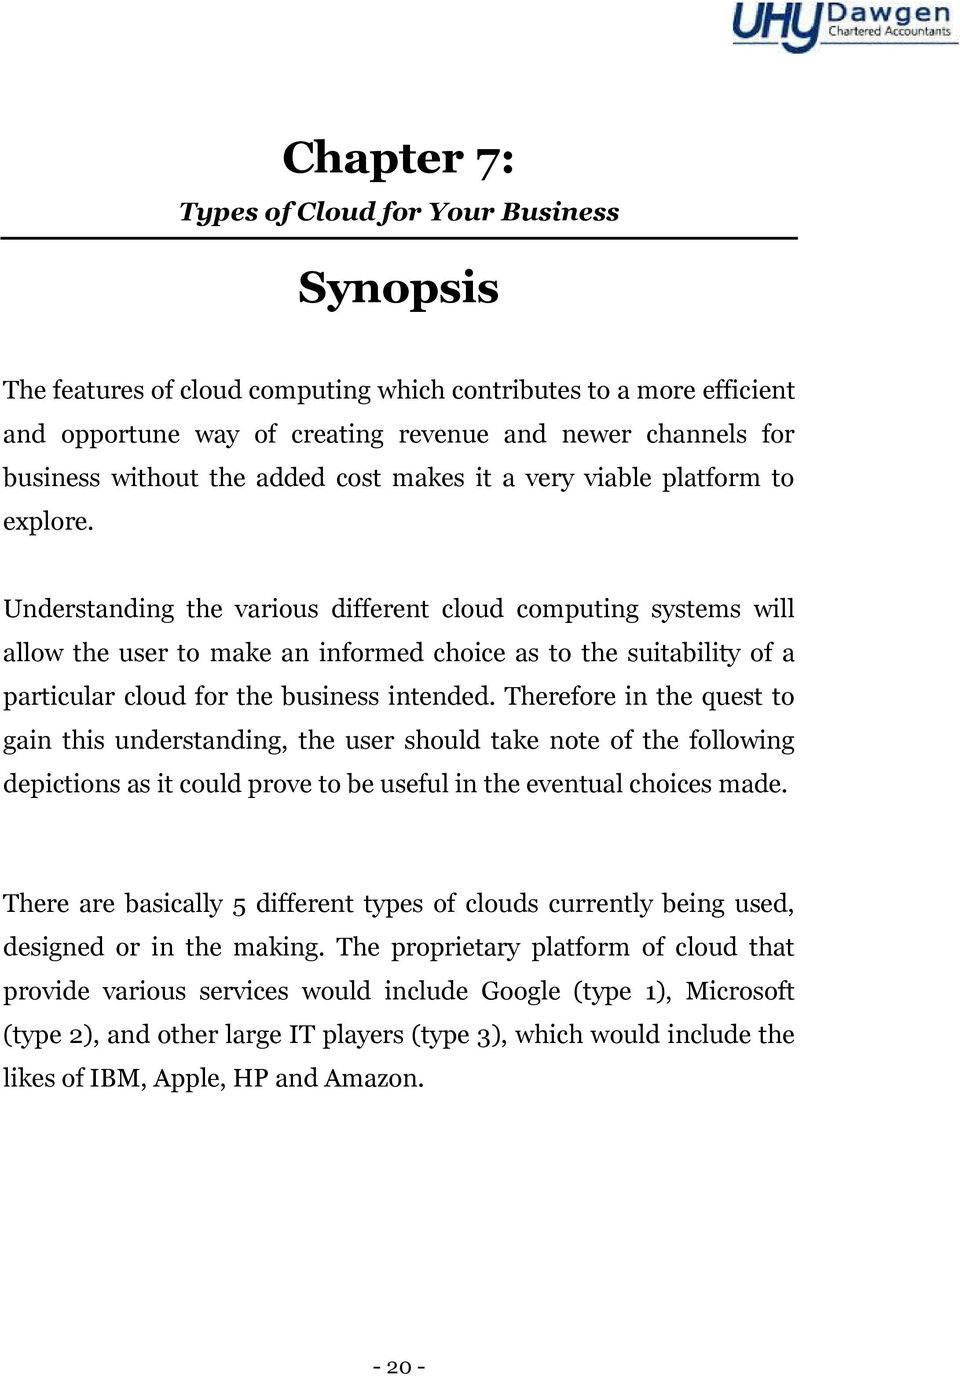 Understanding the various different cloud computing systems will allow the user to make an informed choice as to the suitability of a particular cloud for the business intended.